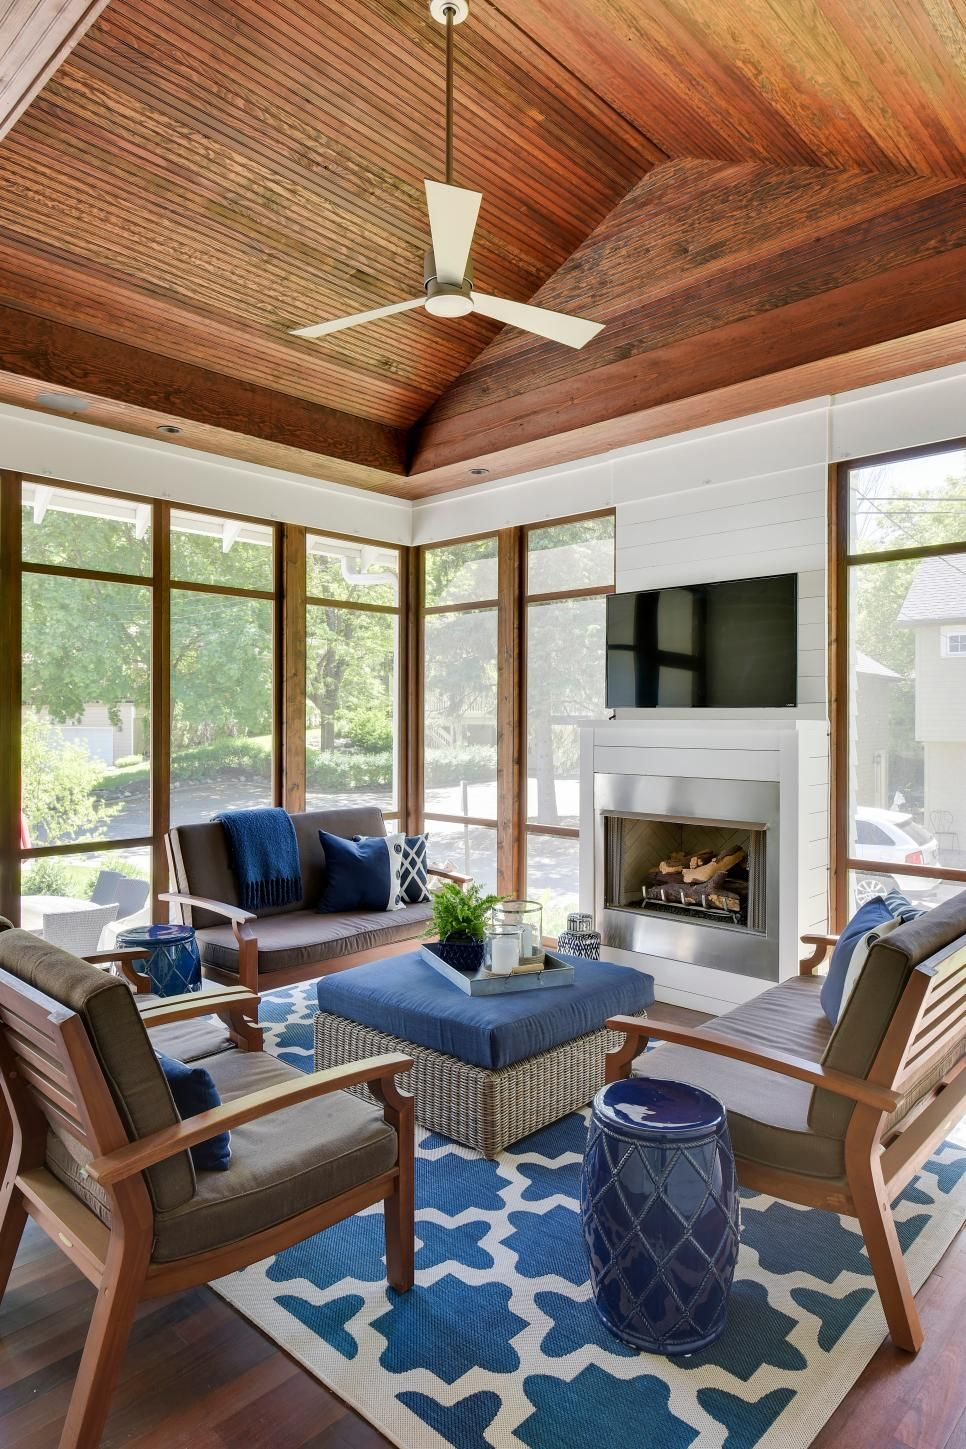 Rooms Viewer | HGTV | Porch ceiling, Shiplap ceiling ...